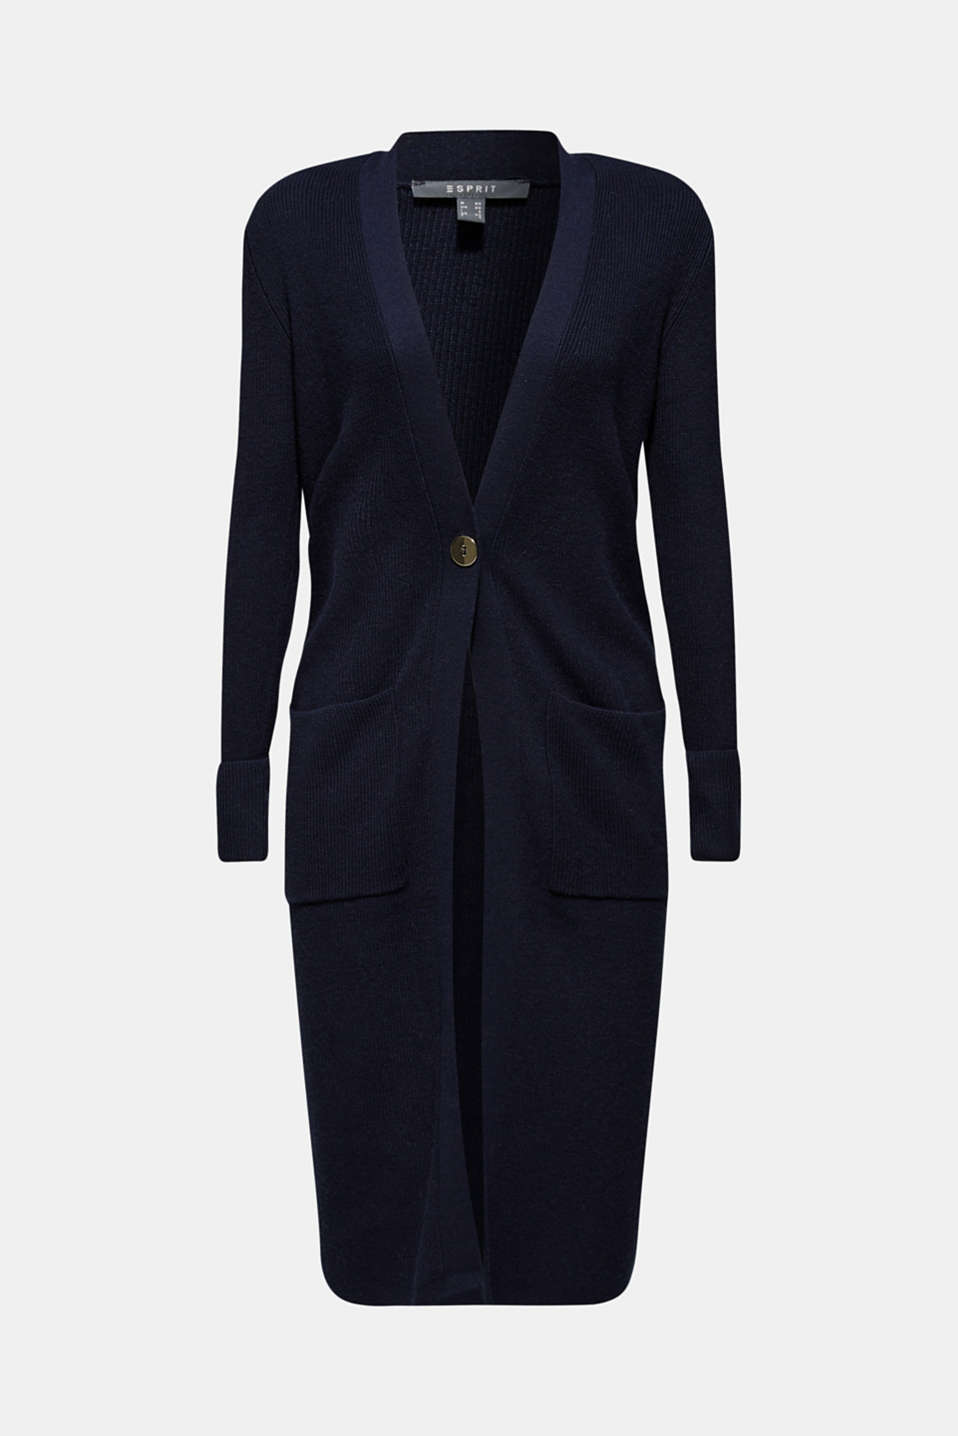 With cashmere: Long, rib knit cardigan, NAVY 2, detail image number 5